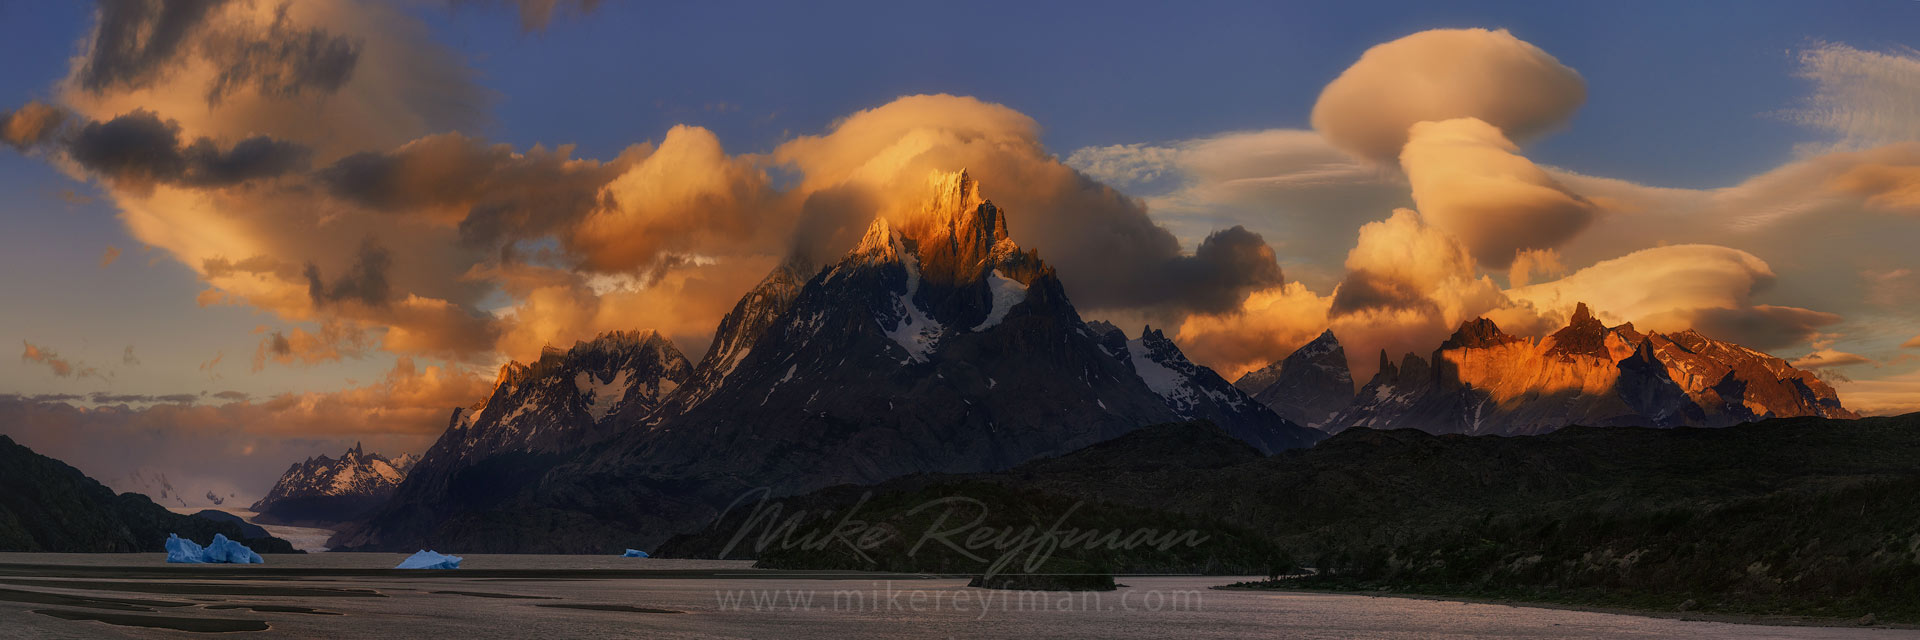 Fiery sunset over Cordillera del Paine. Panoramic view of Lago Grey, Cerro Paine Grande and Cuernos del Paine. Torres del Paine National Park, Patagonia, Chile. - Torres-Del-Paine-National-Park-Patagonia-Chile - Mike Reyfman Photography